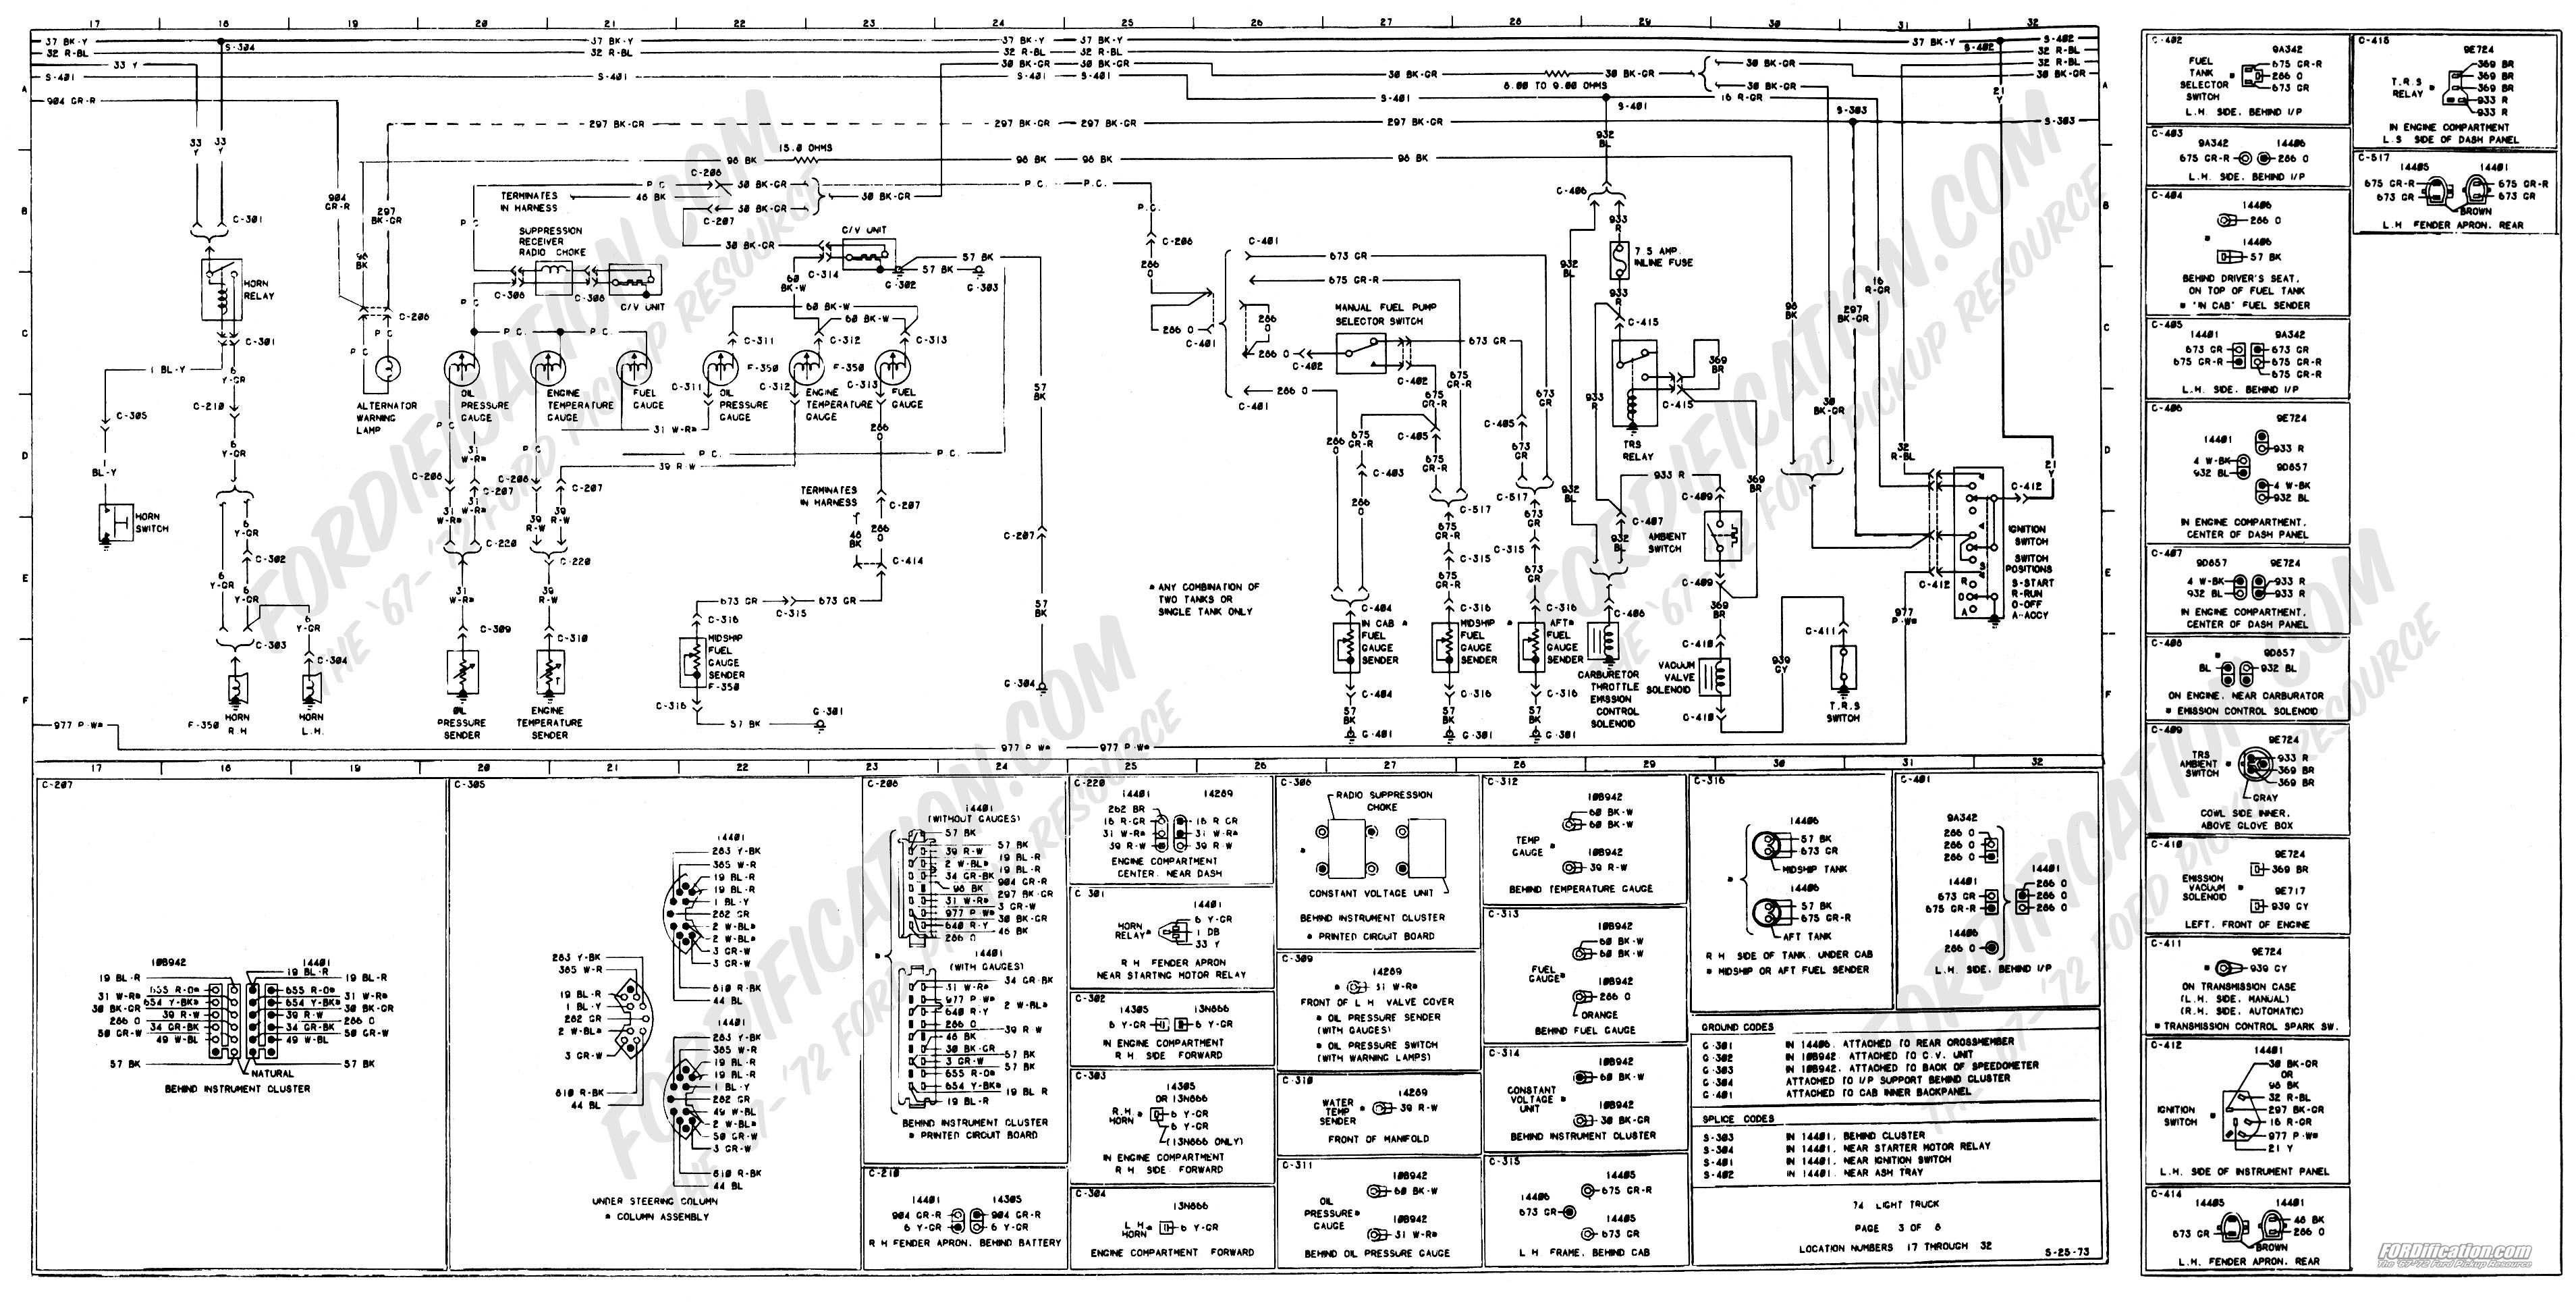 1977 ford 351 wiring diagram on 74 f100 help with wiring diagram ford truck enthusiasts forums 351 Windsor Engine Parts 351 Windsor